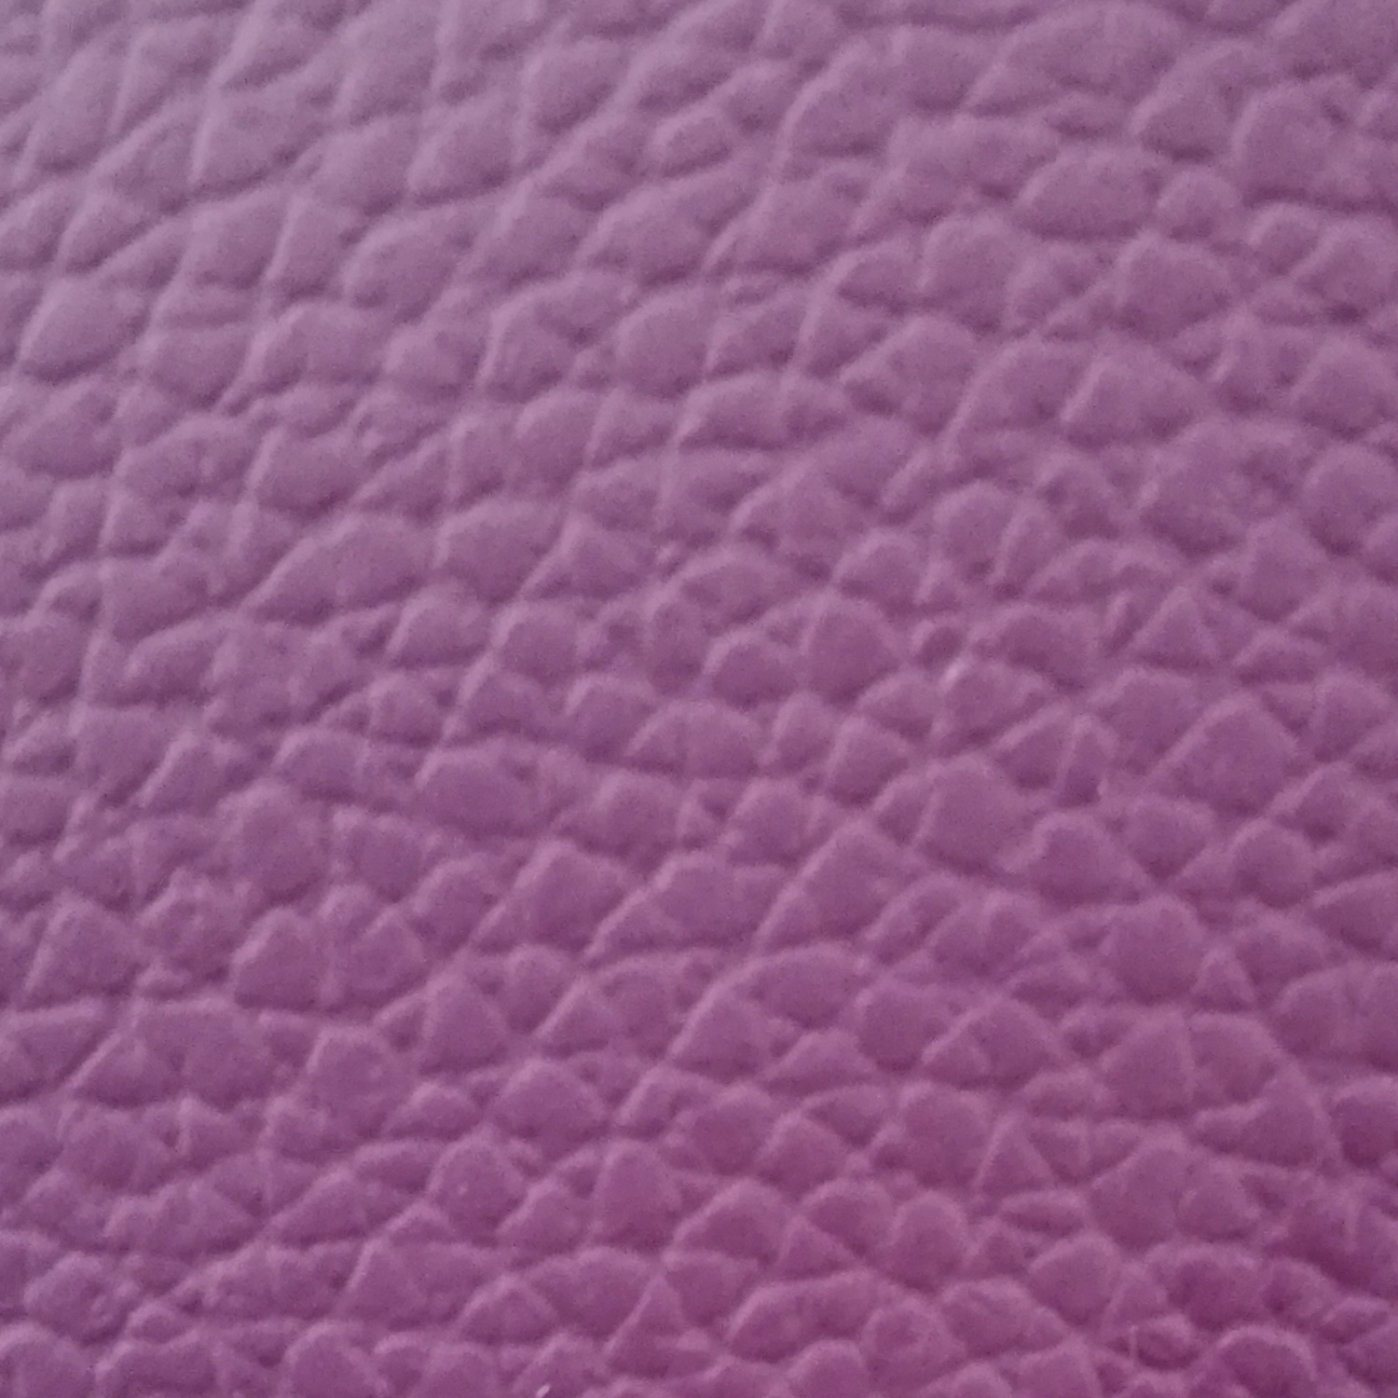 SGS International Gold Medal Z035leather Upholstery Leather Upholstery Leather PVC Leather